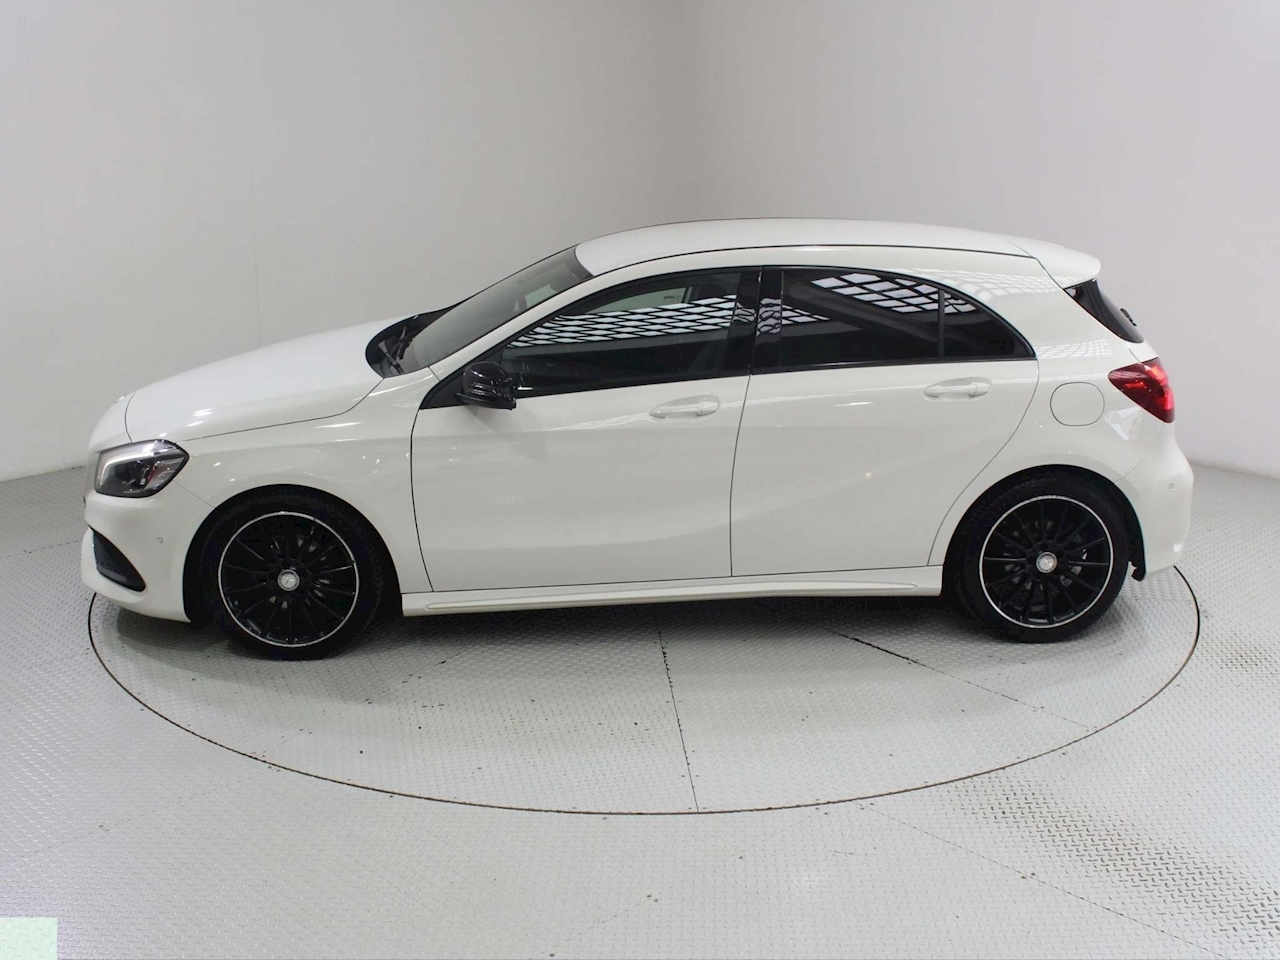 Mercedes-Benz A-Class A 180 D Amg Line Premium Hatchback 1.5 Manual Diesel